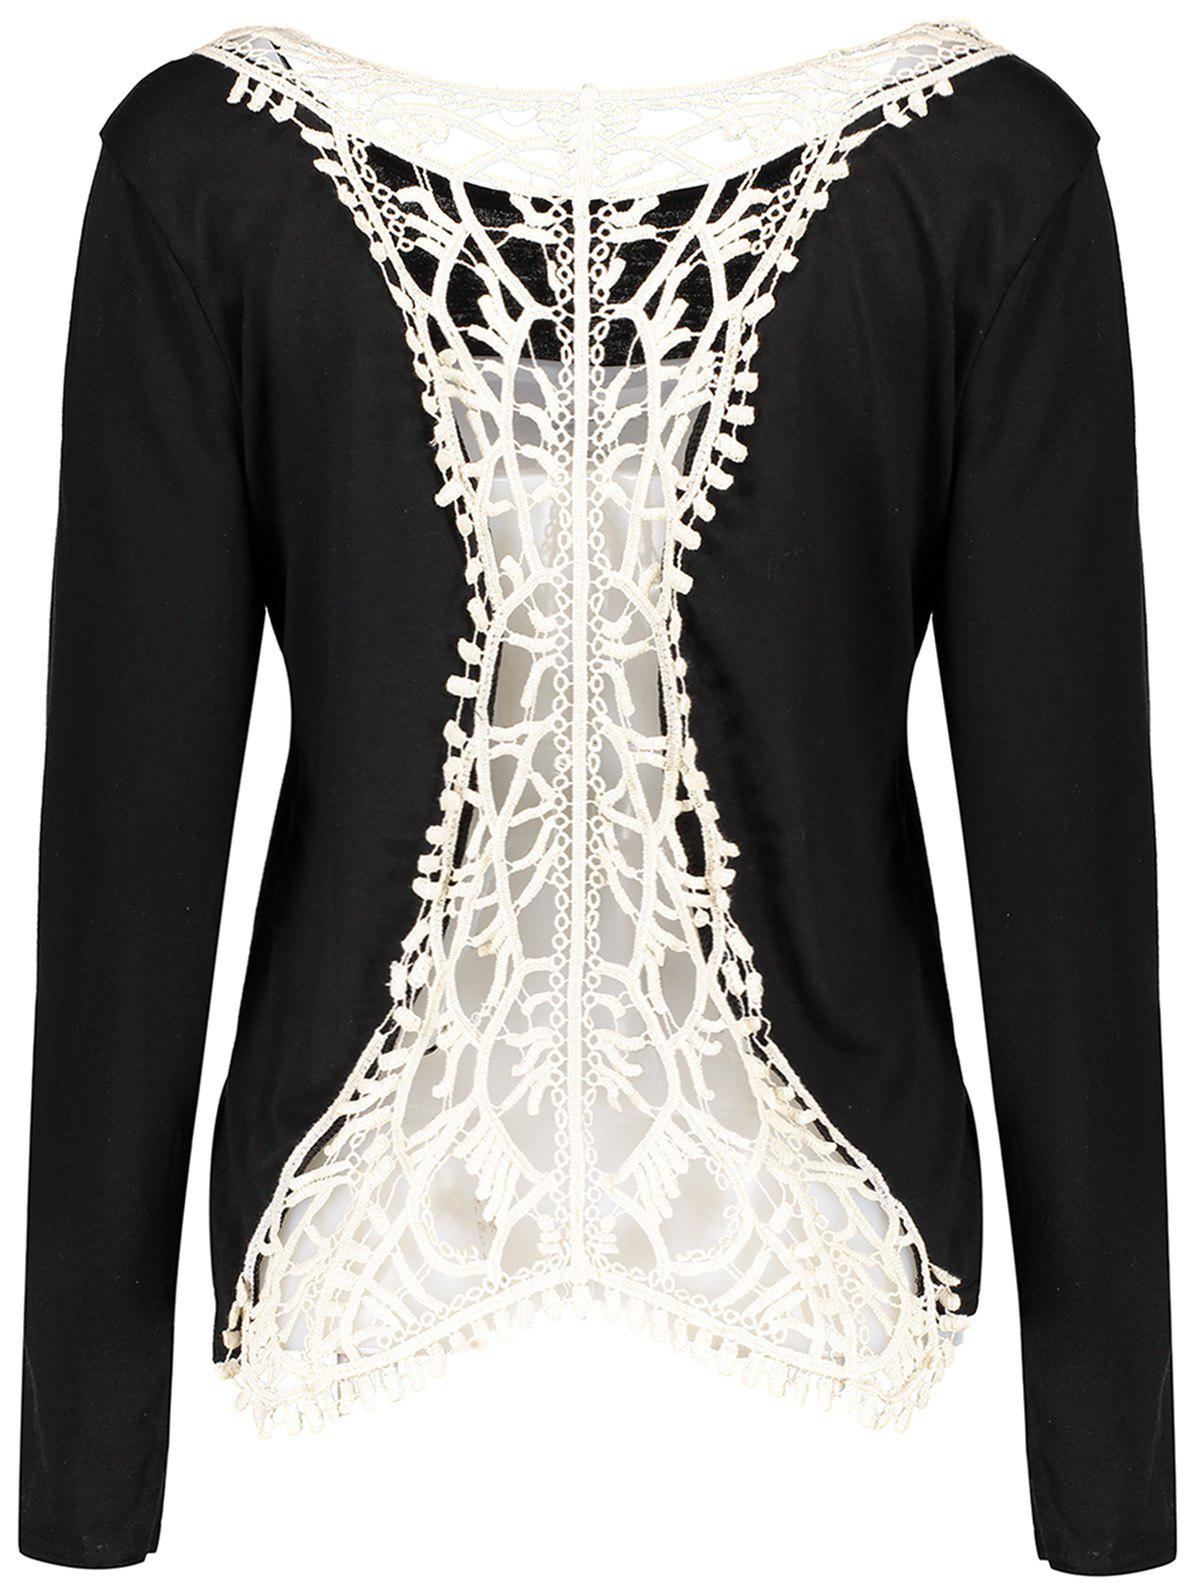 Long Sleeve Back Hollow Out Crochet Lace Spliced T-Shirt